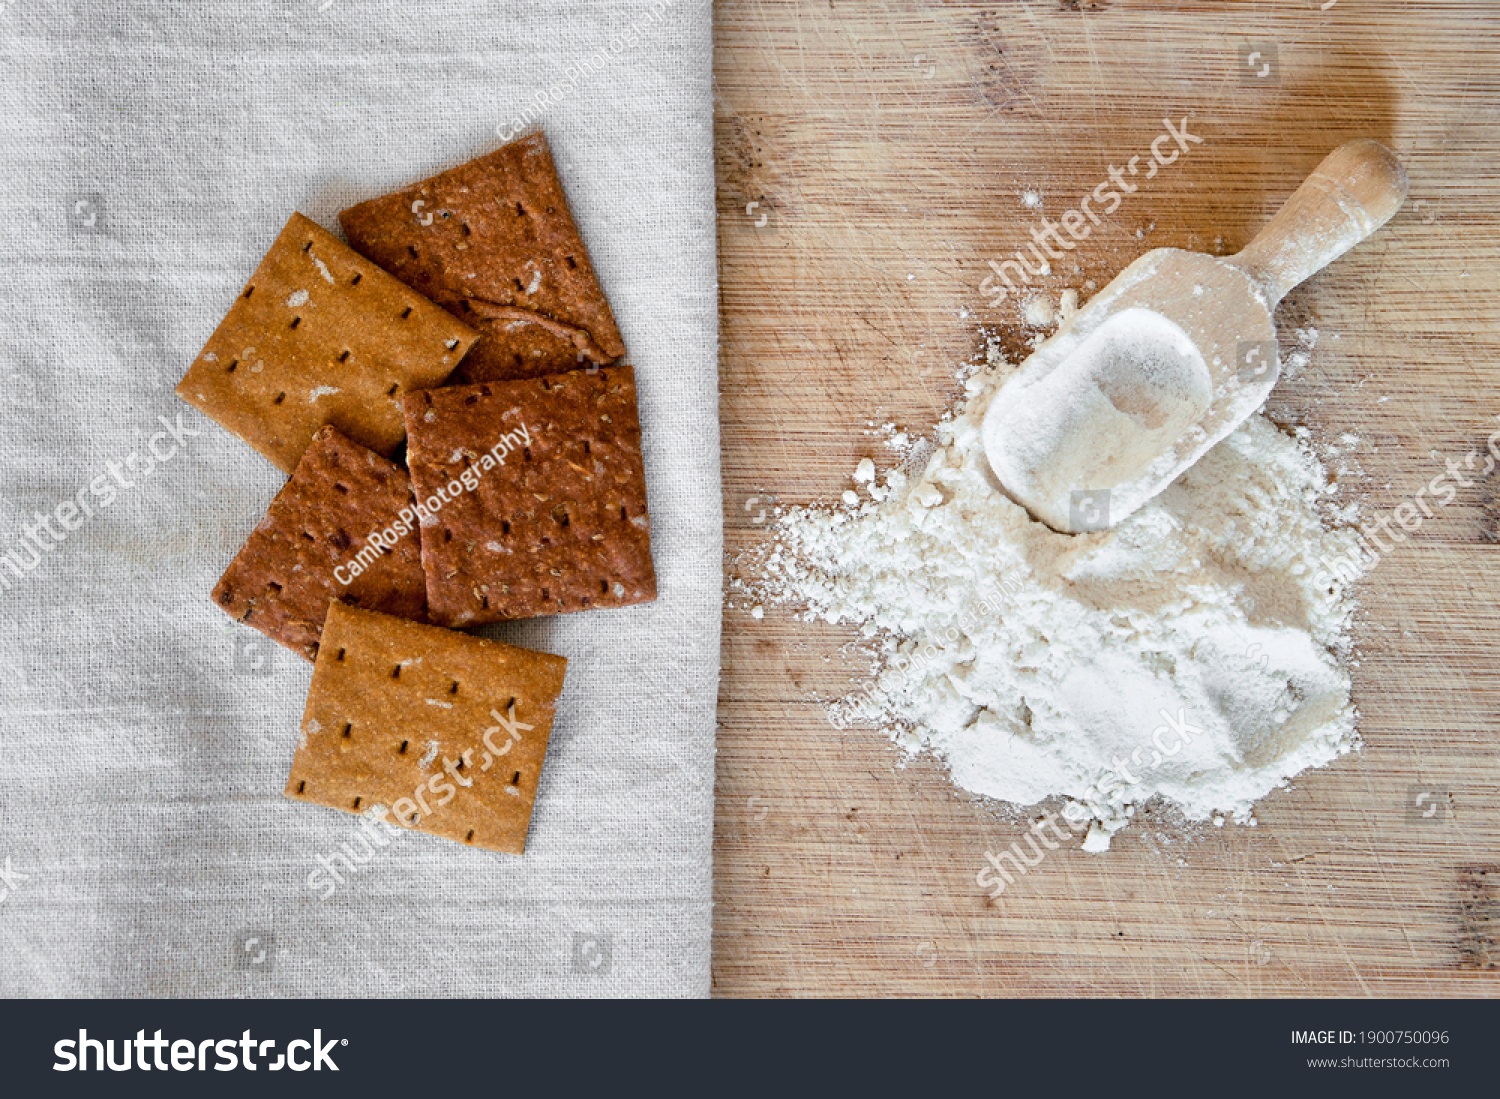 Cricket insect crackers snack and cricket flour for eating as food items made of cooked insects as a good source of protein. Entomophagy concept. The concept of protein food sources from insects. #1900750096